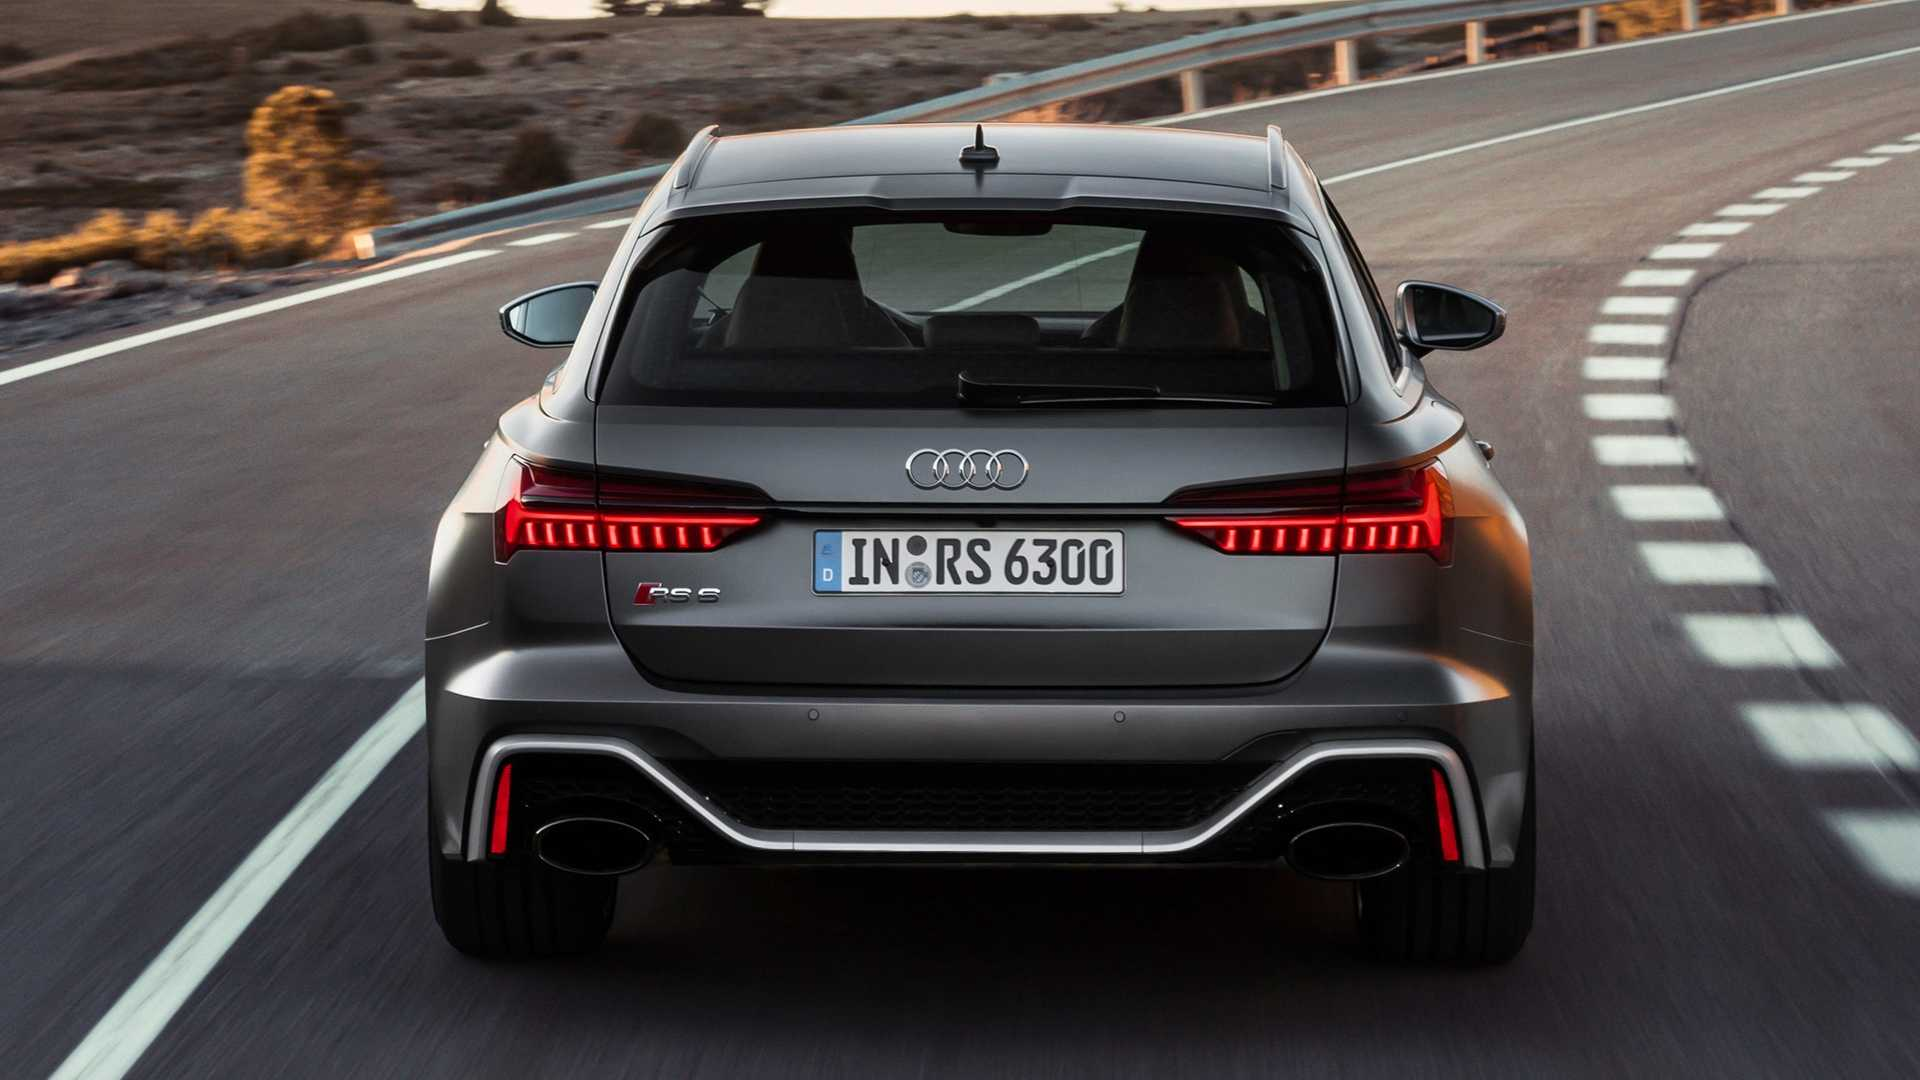 2020 Audi RS6 Avant official footage offers 20 minutes of joy